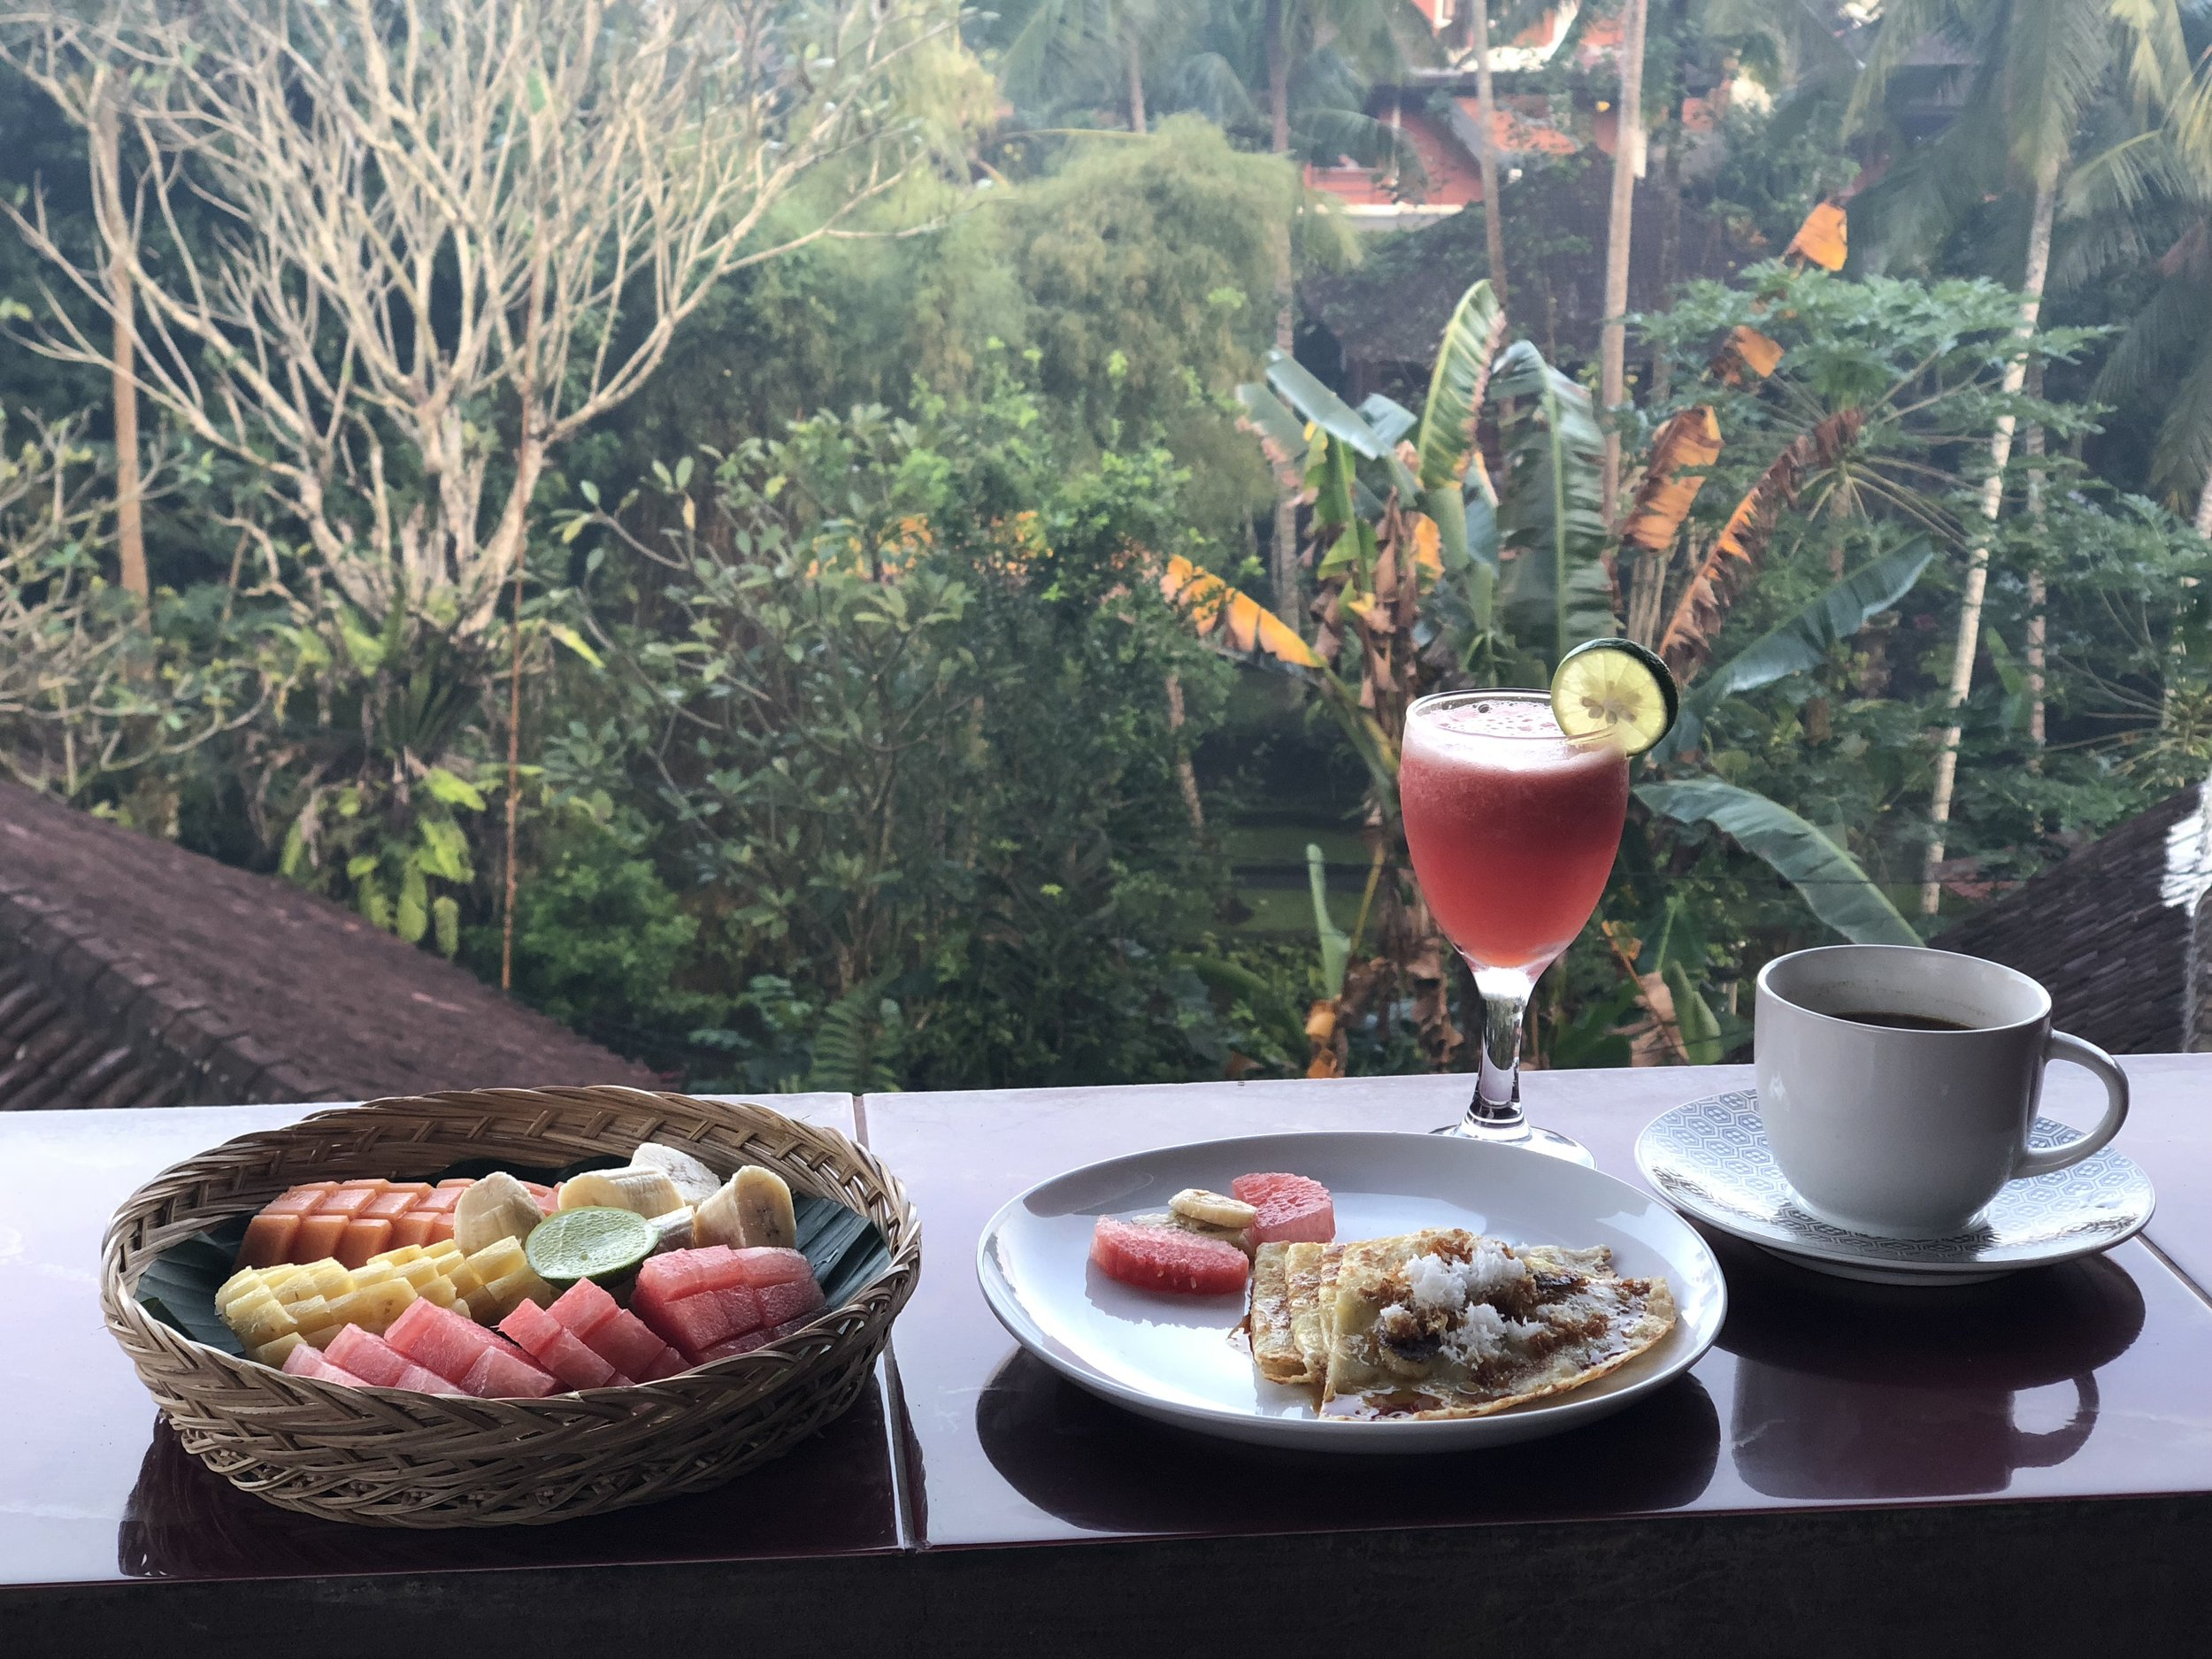 Breakfast Room-Service included everyday... hello breakfast-in-bed... or enjoy on your private balcony... or by the beautiful pool! Delicious food is available to order throughout the day as well- including vegetarian, vegan, and raw options. -